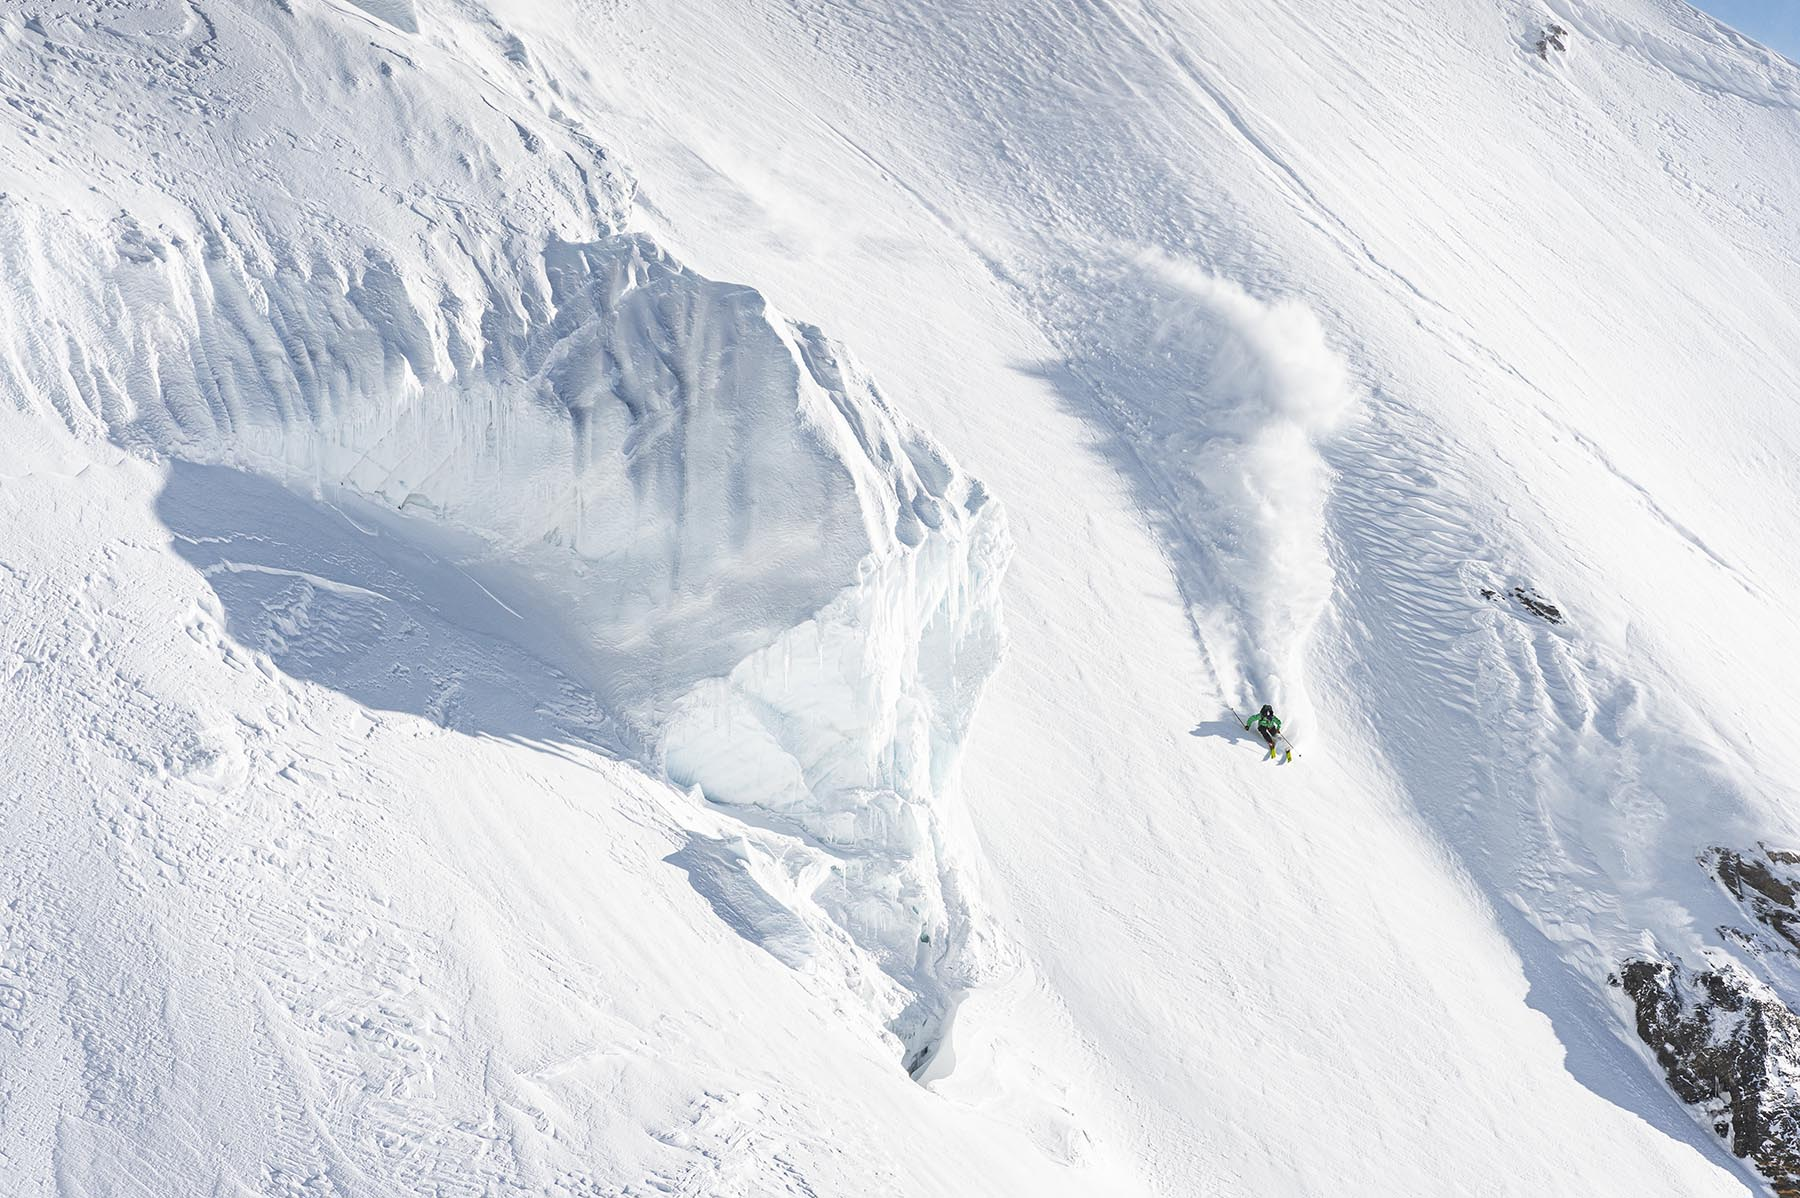 A skier descends a steep off-piste slope on Faction skis